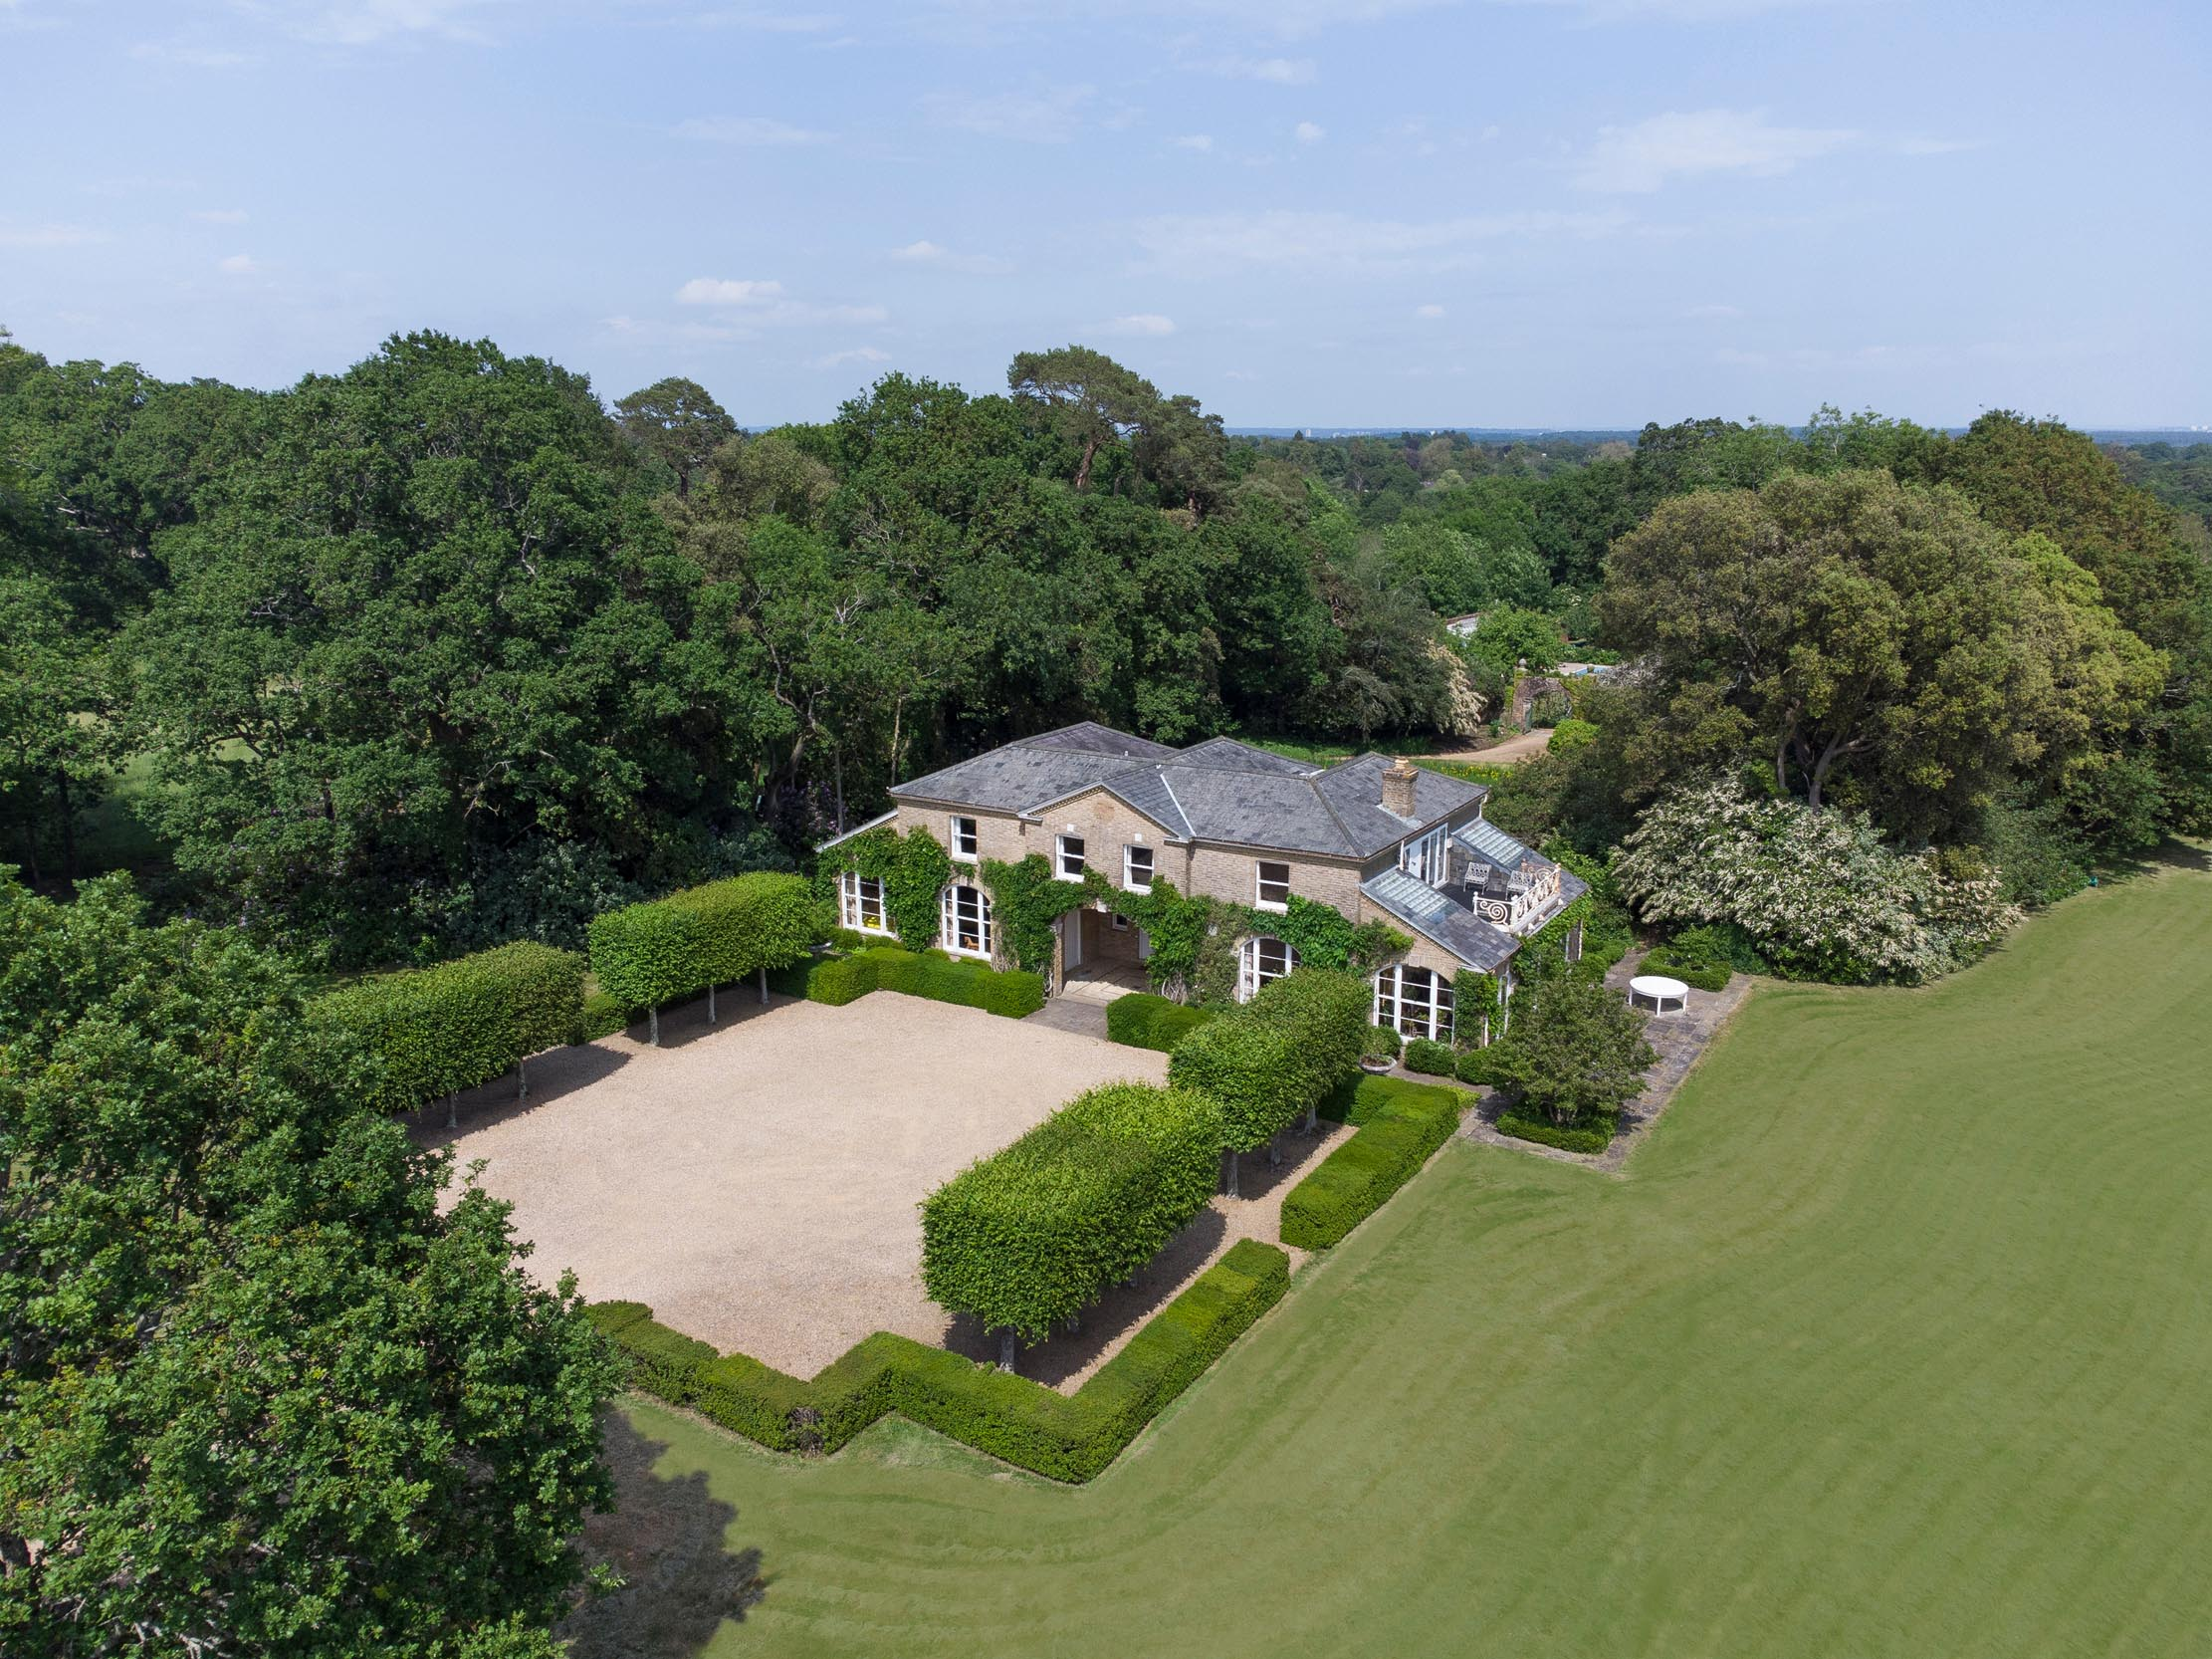 A glorious, rolling Hampshire estate with grounds designed by Capability Brown, on the market for the first time in three-quarters of a century - Country Life